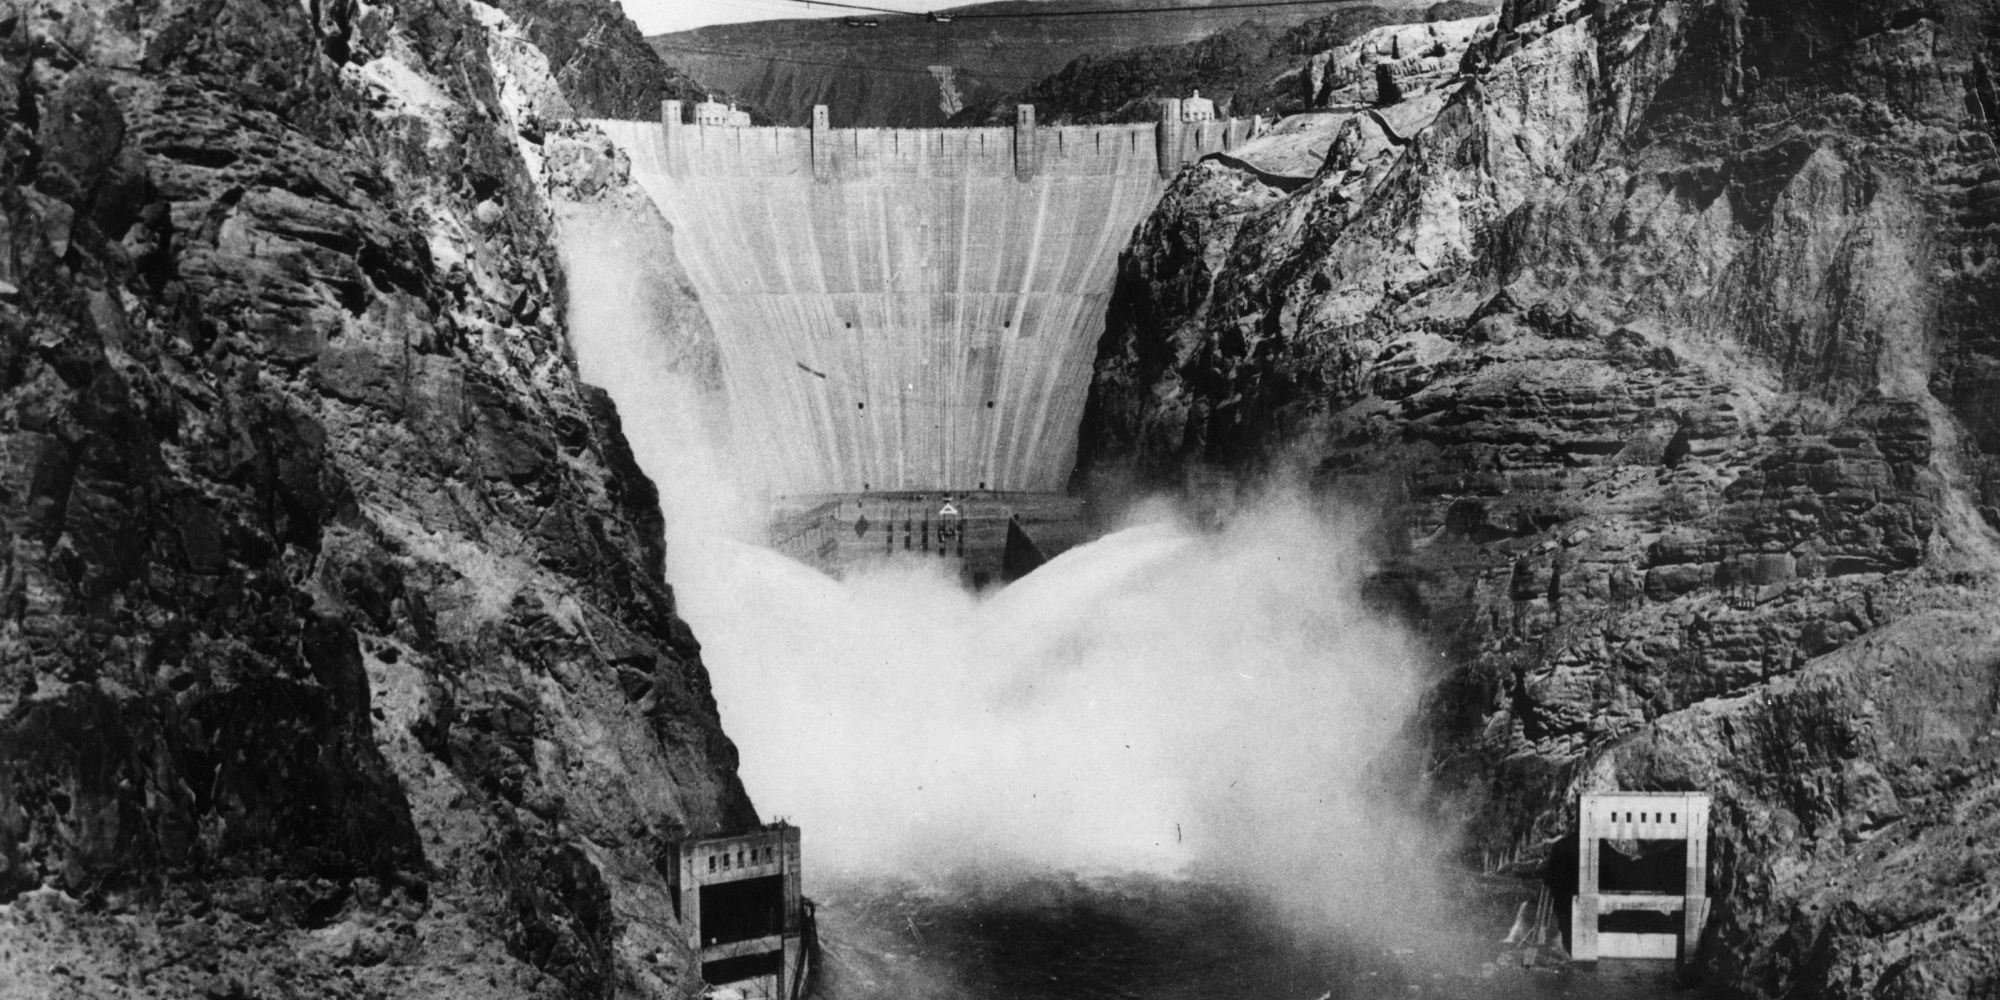 Incredible photos tell the story of the hoover dam huffpost for Best old pictures